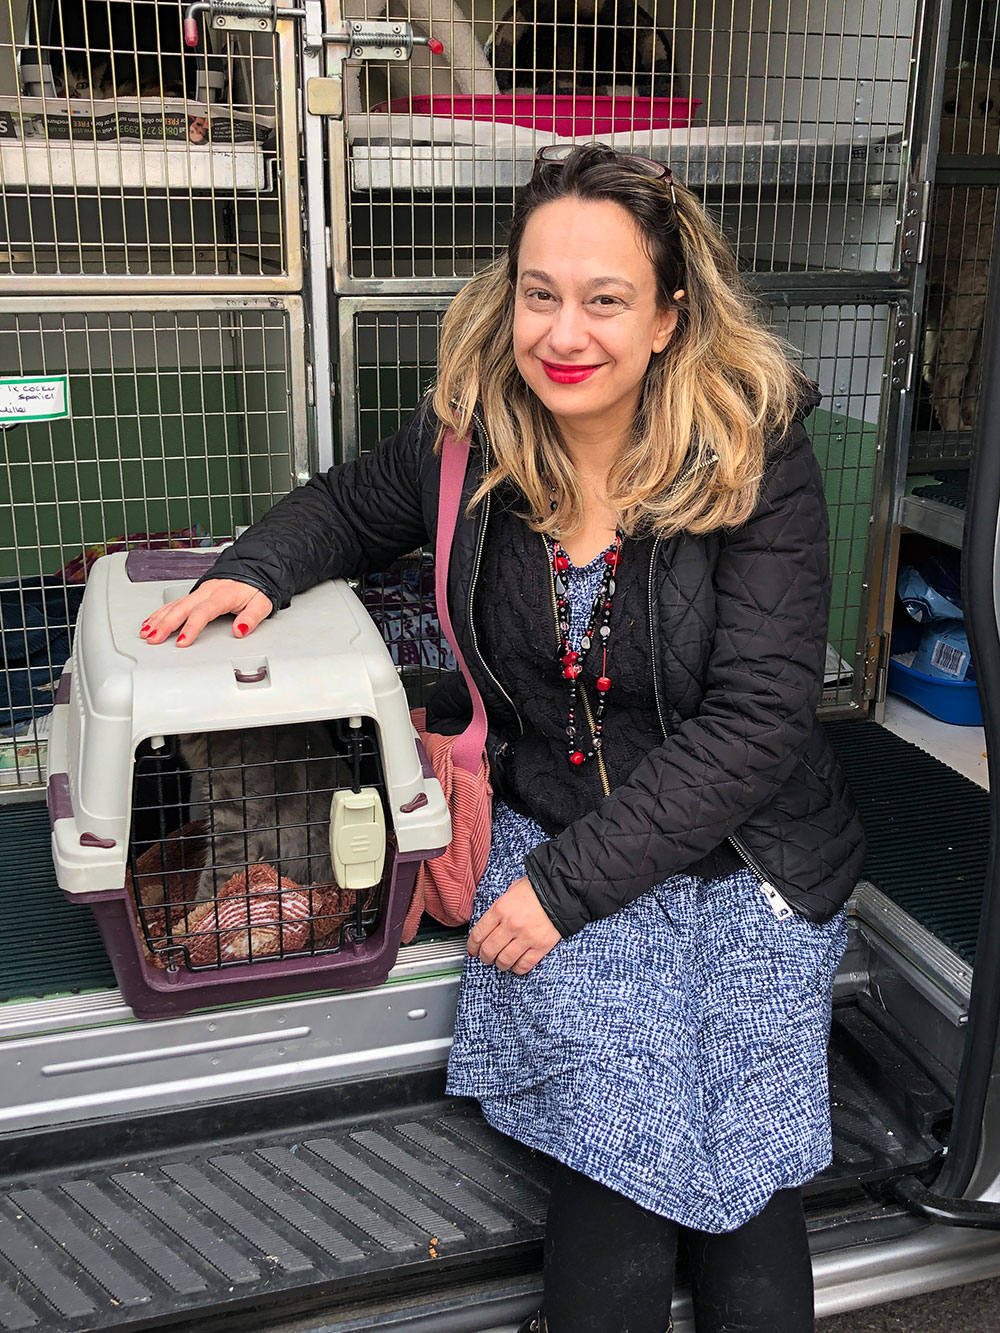 Nine Lives Greece arrived with two kittens and a cat who've been adopted by Michelle in England